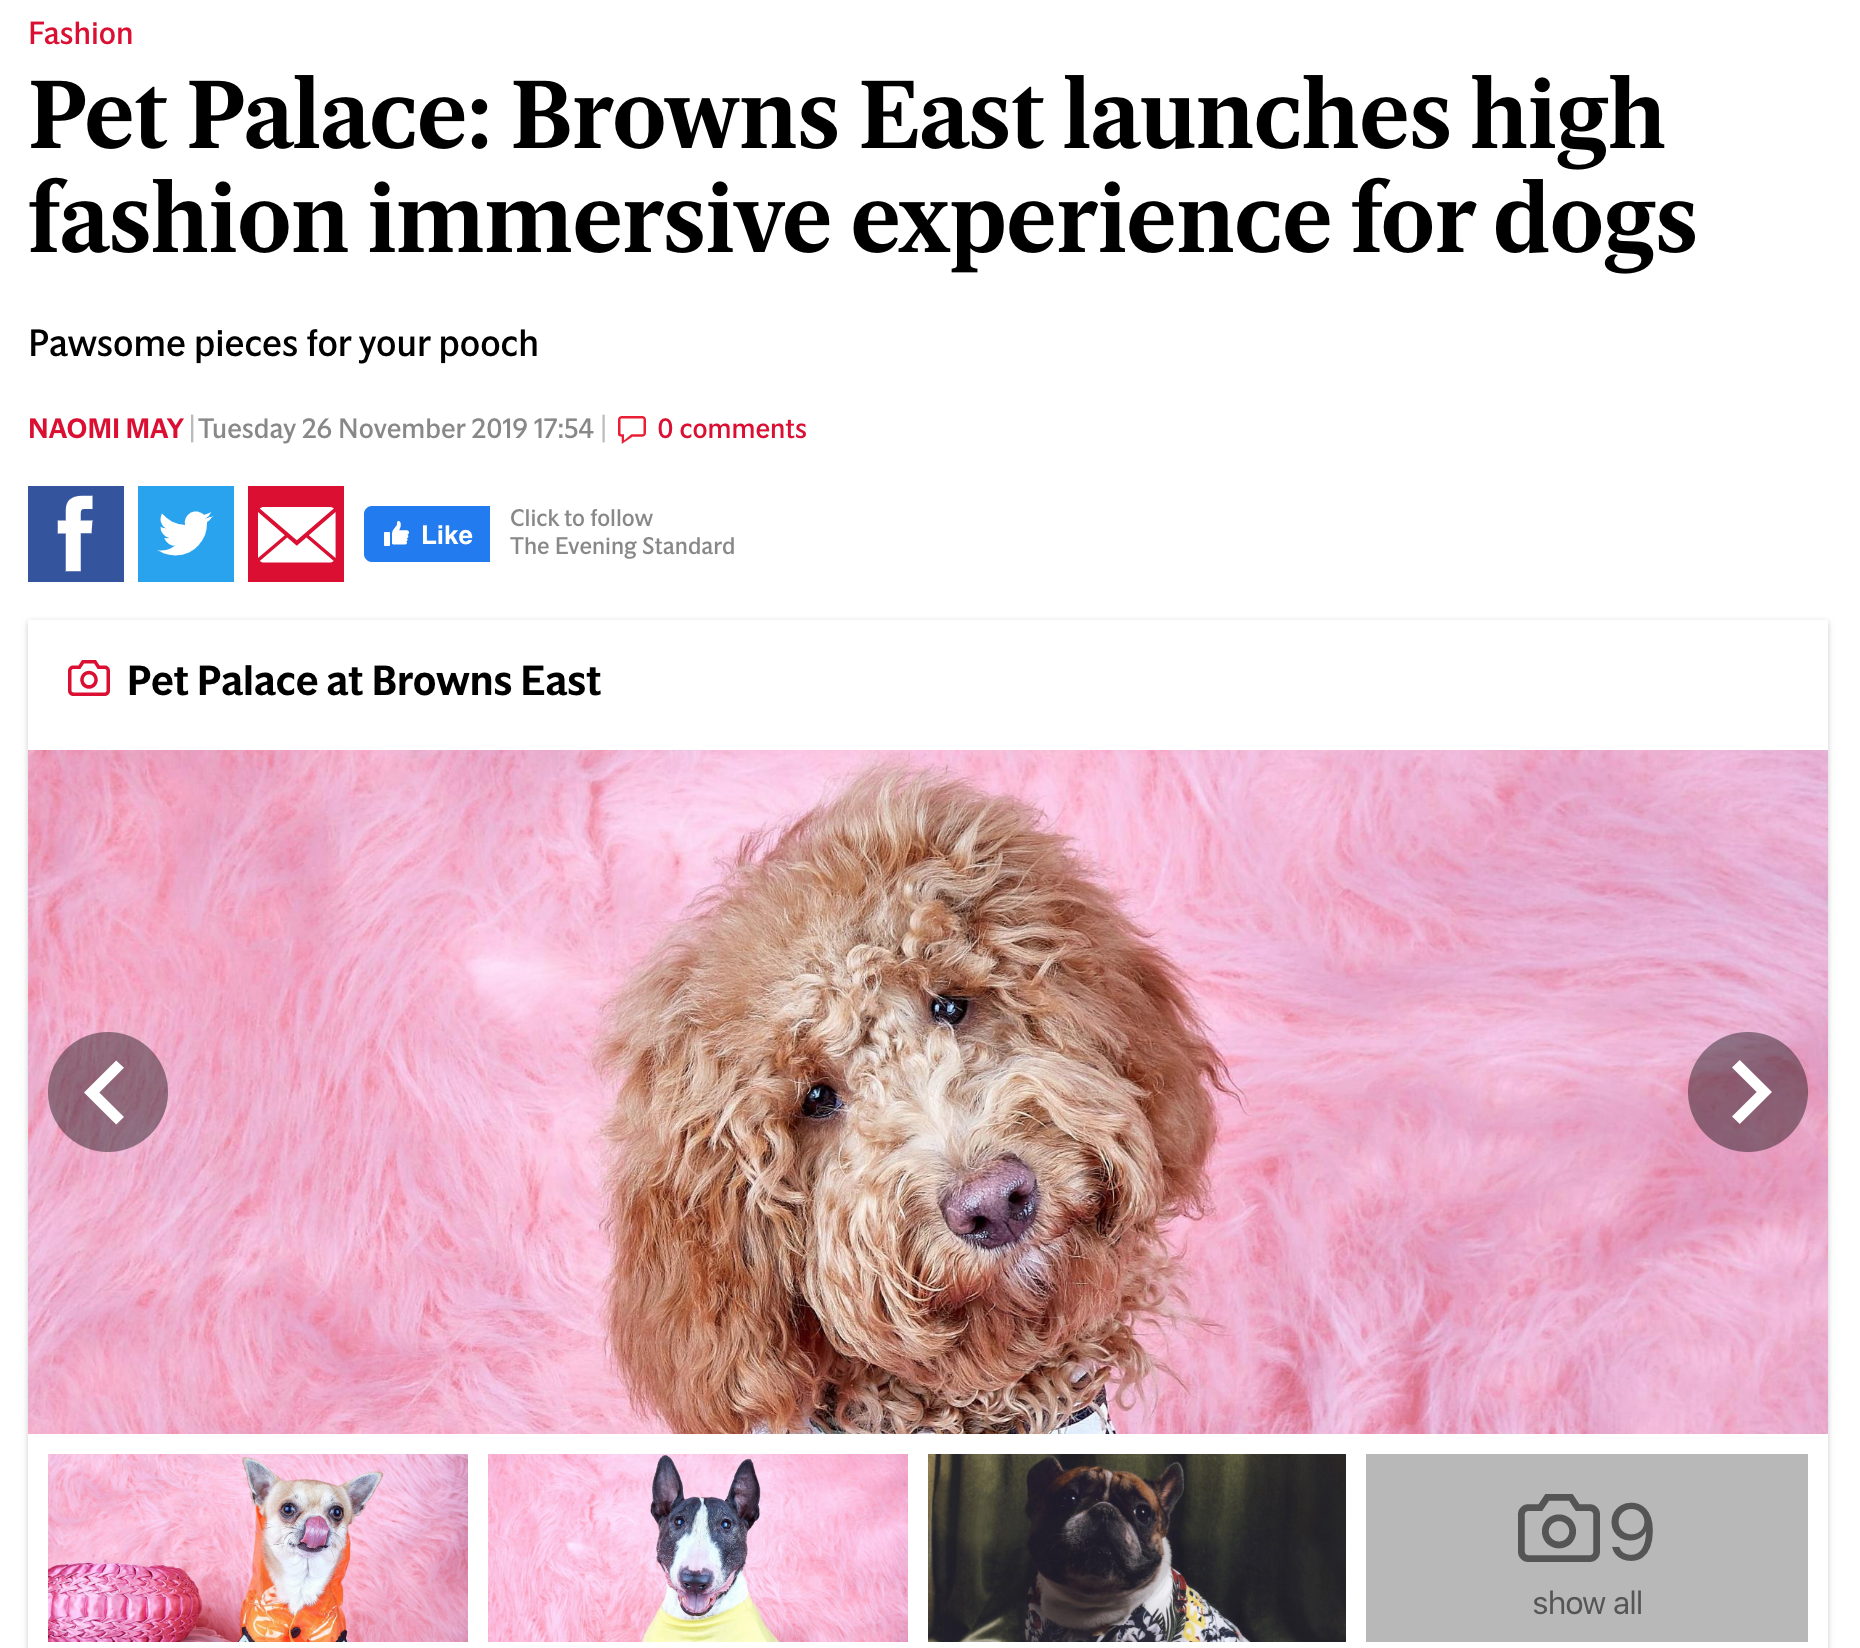 Pet Palace at the Browns Fashion